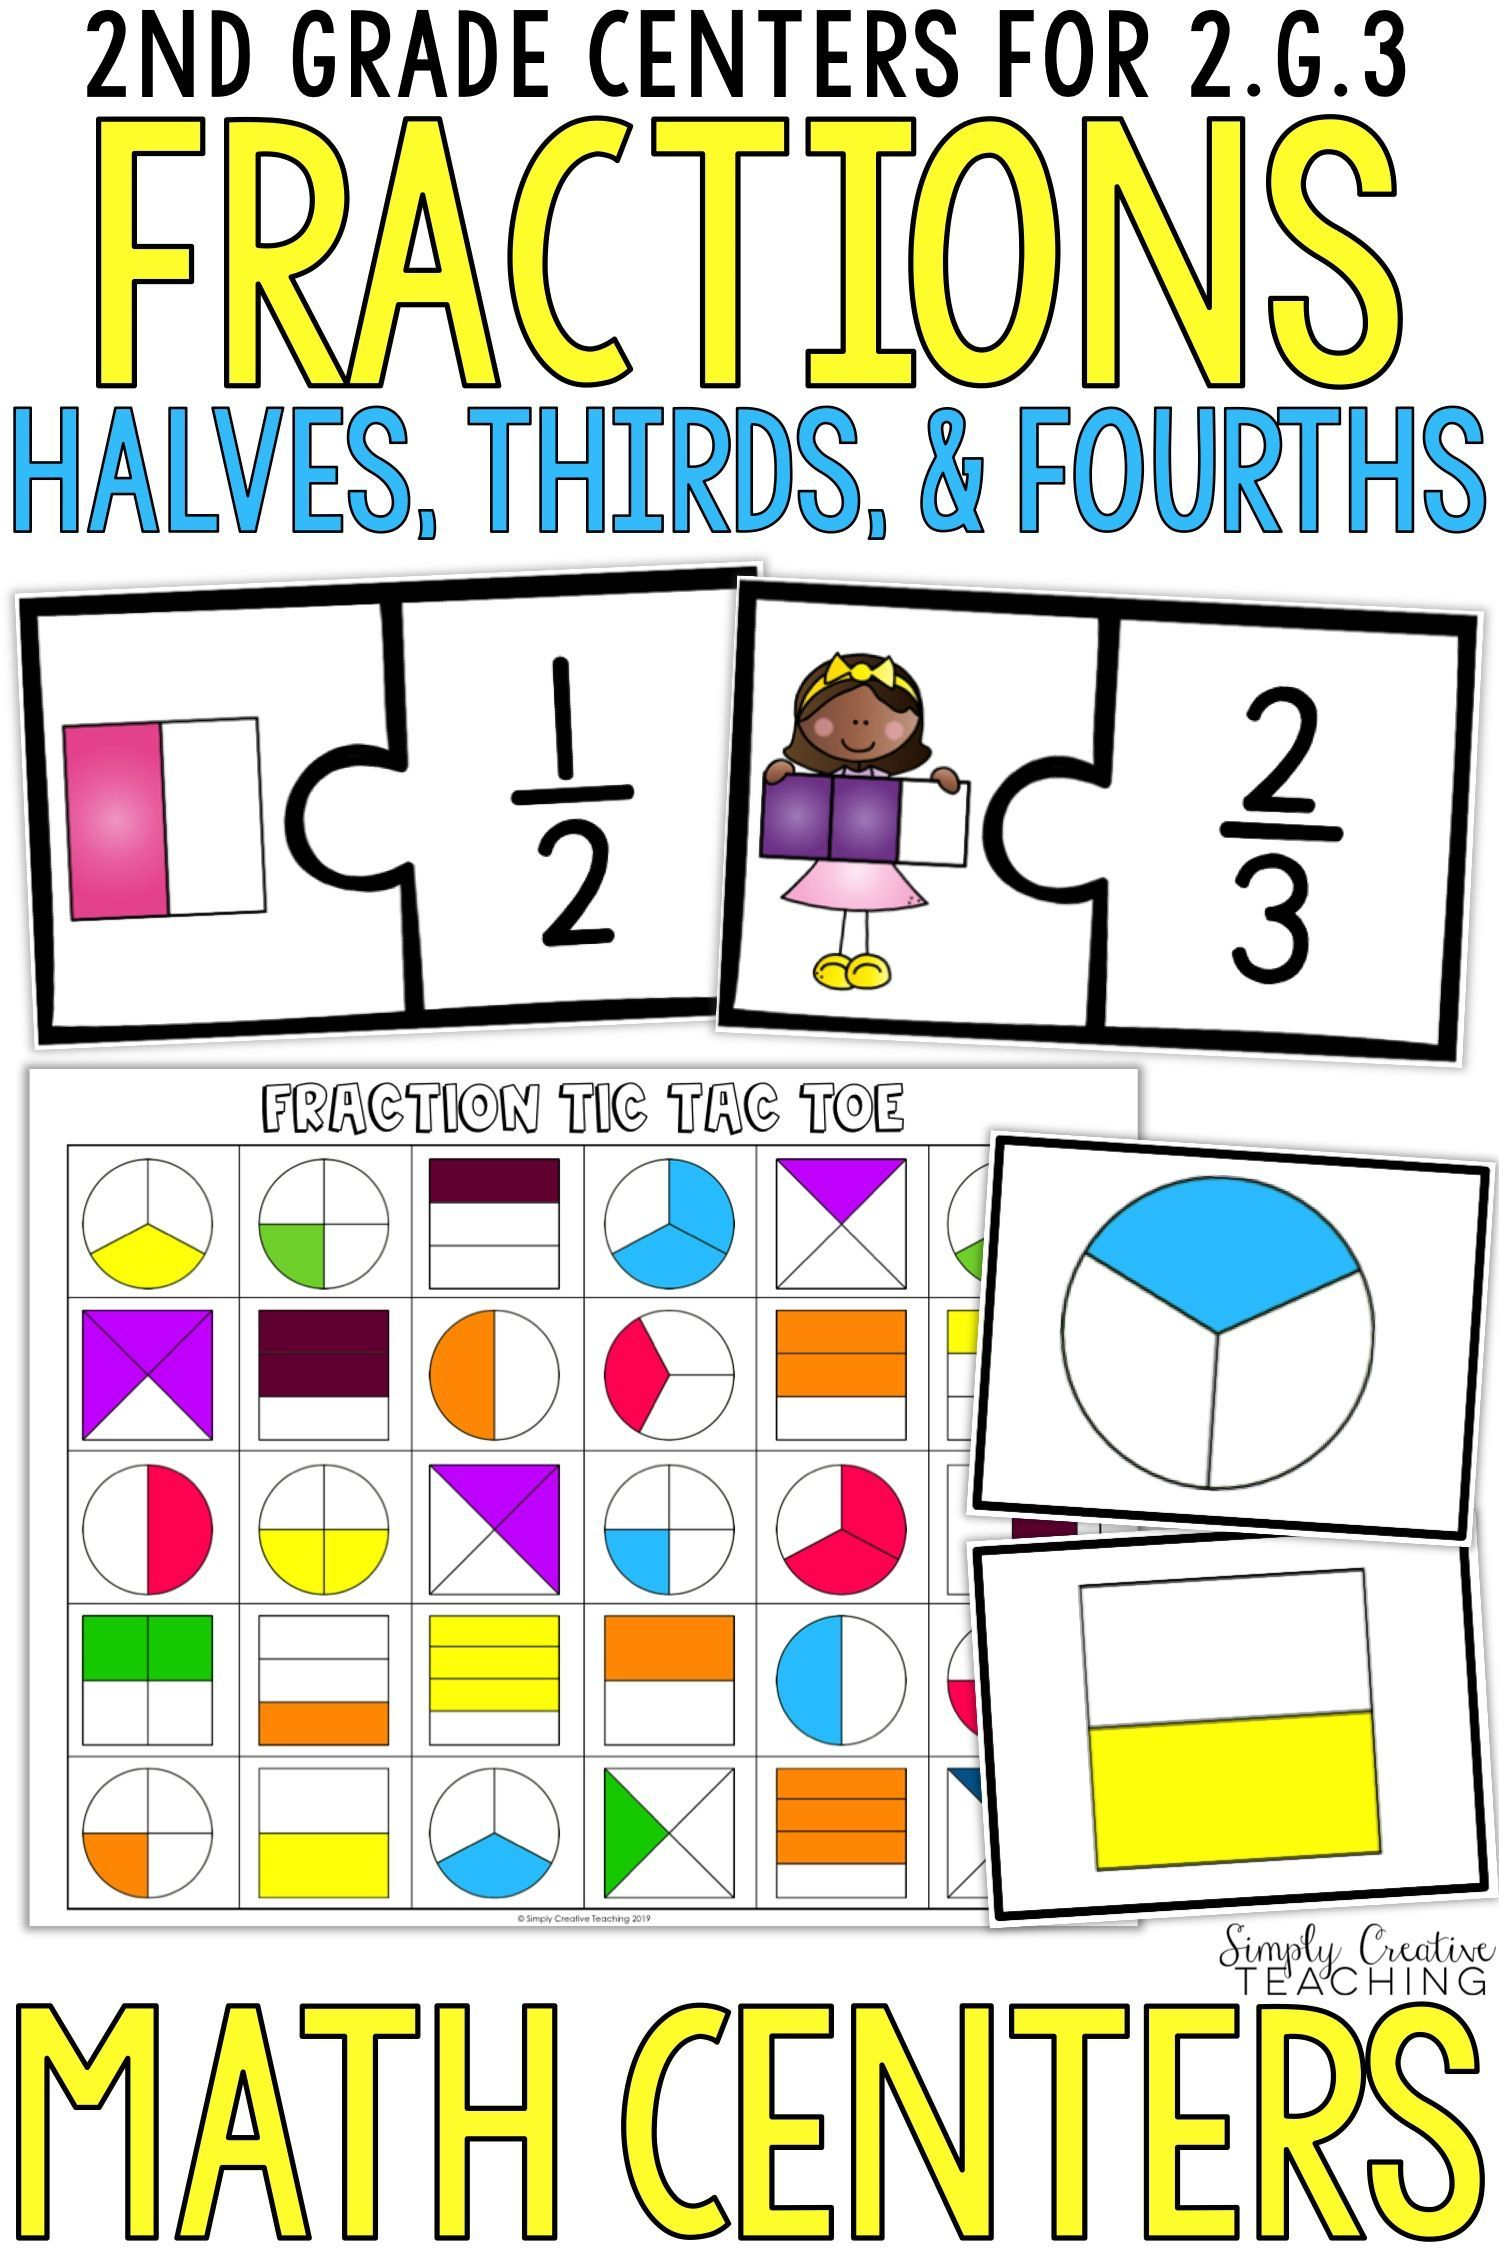 hight resolution of 2nd Grade Partitioning Shapes into Halves